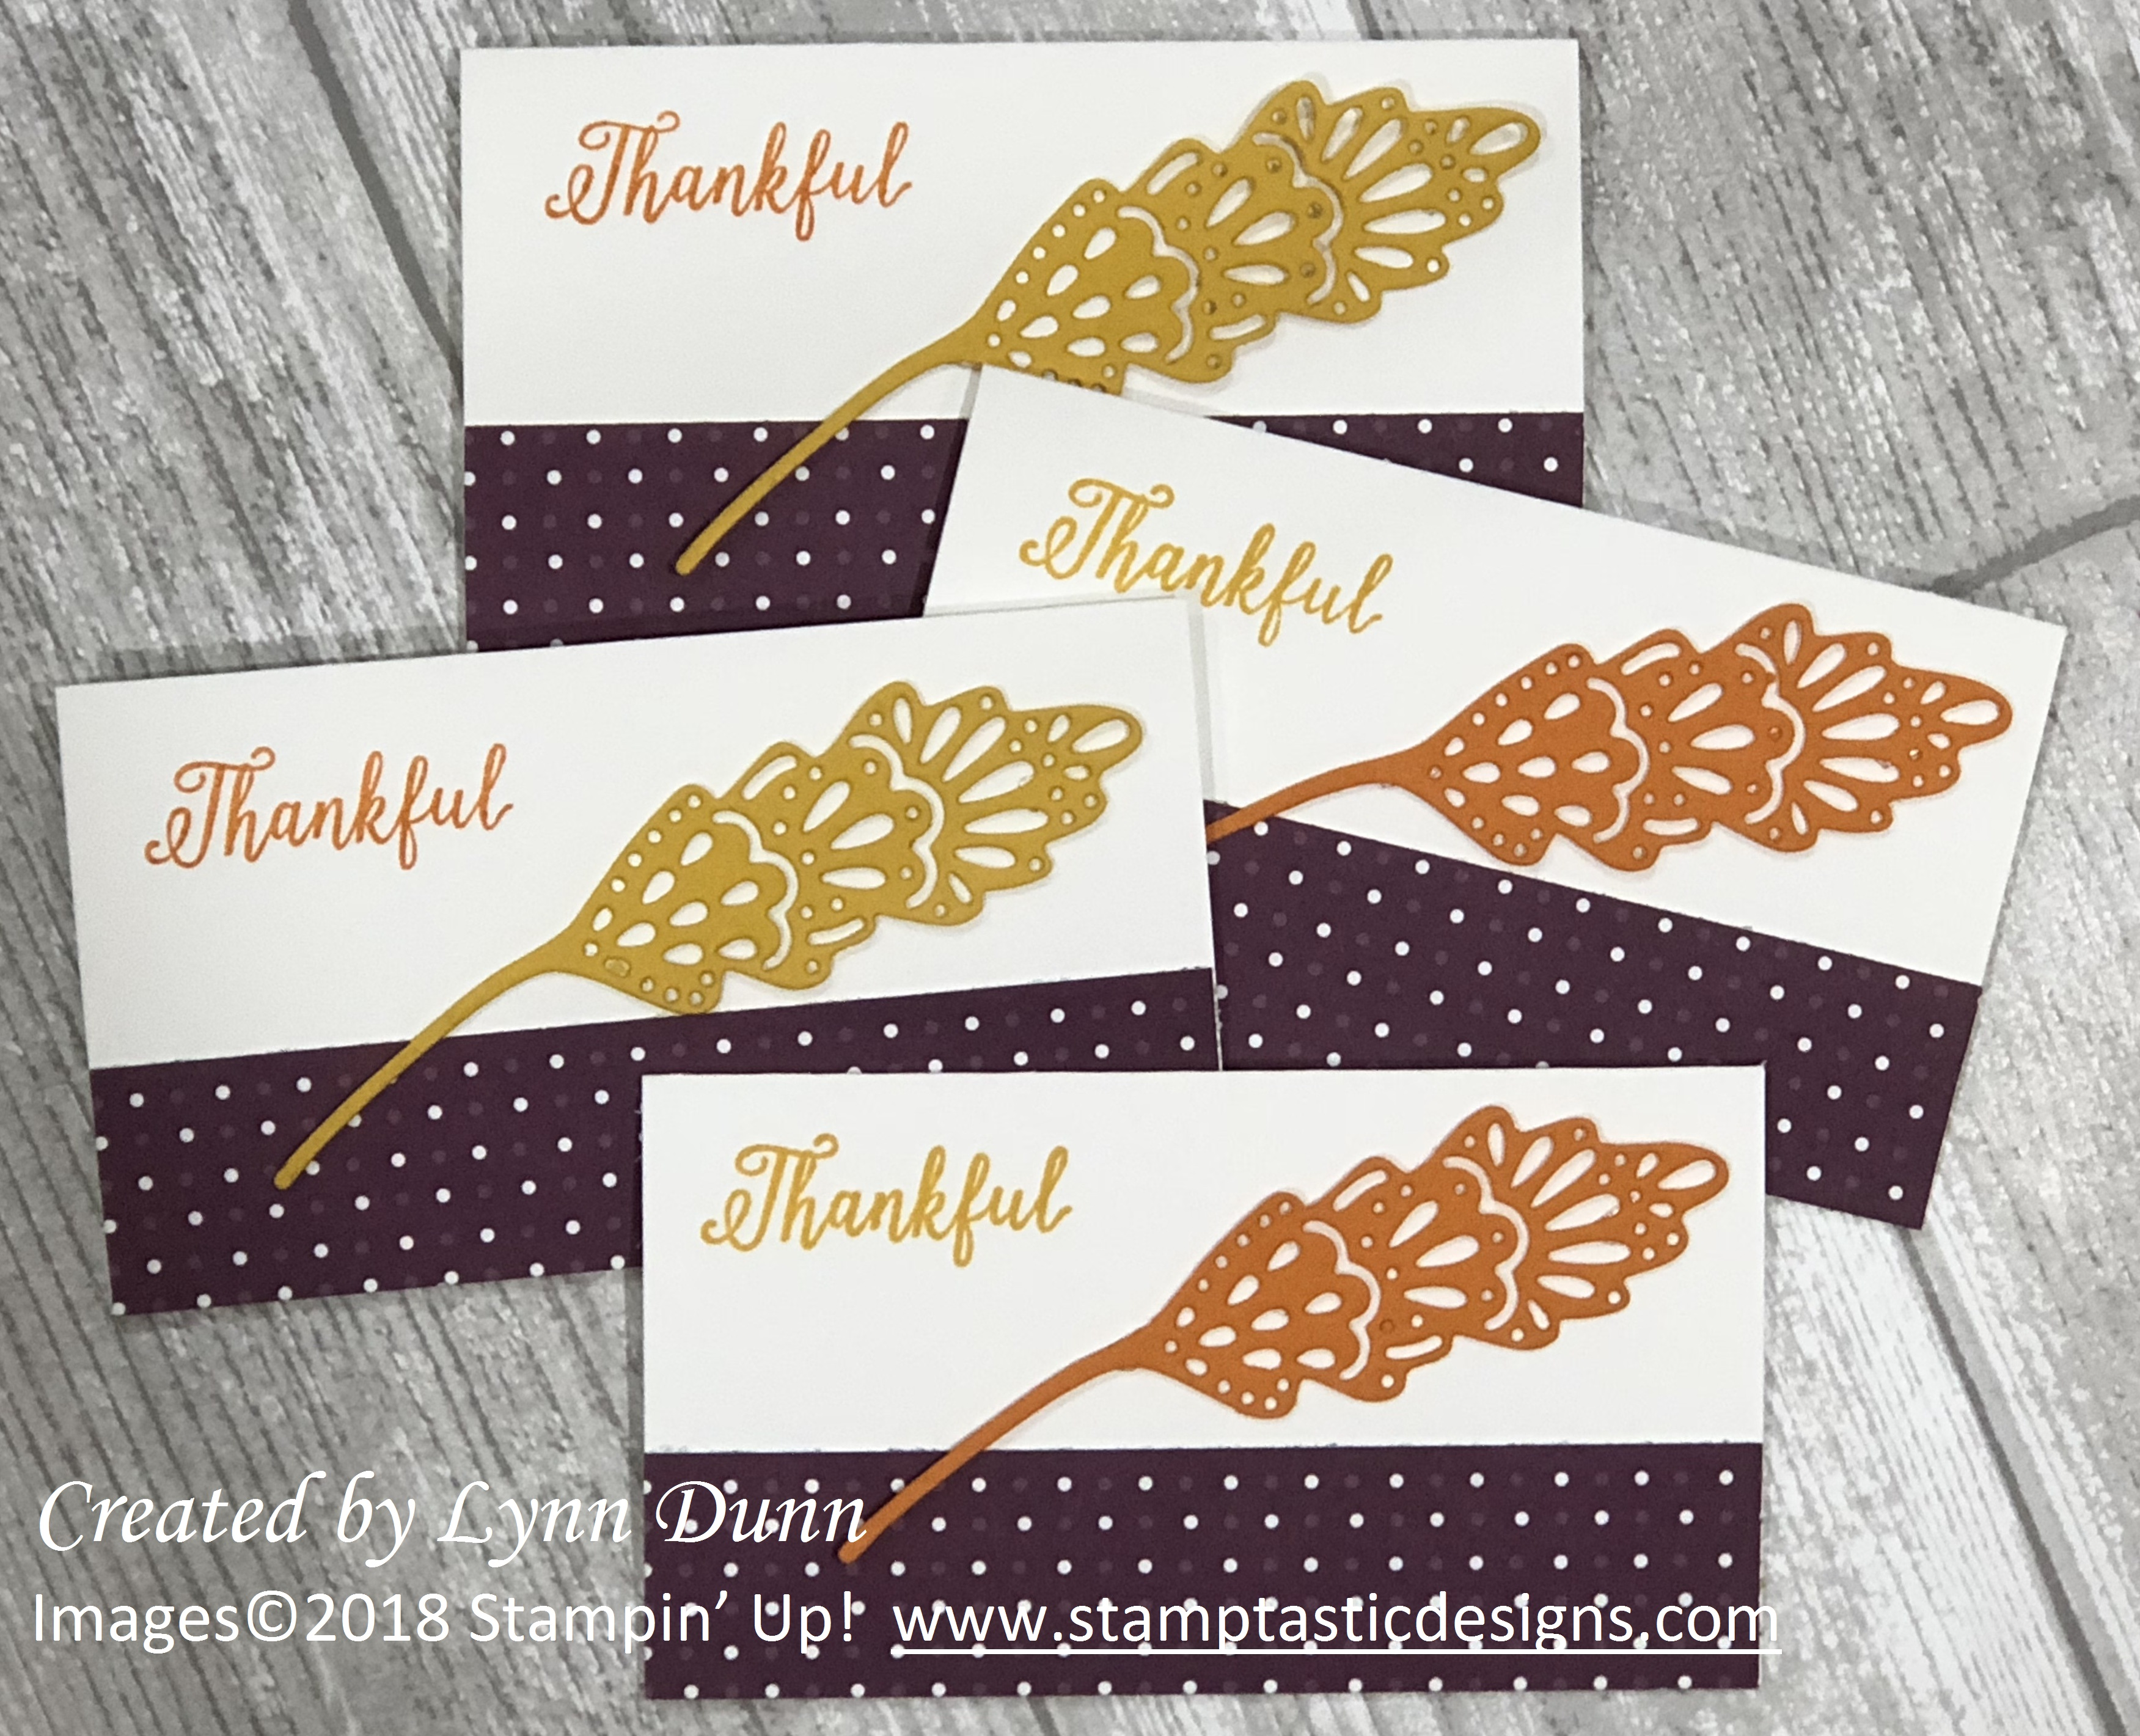 stampin up archives